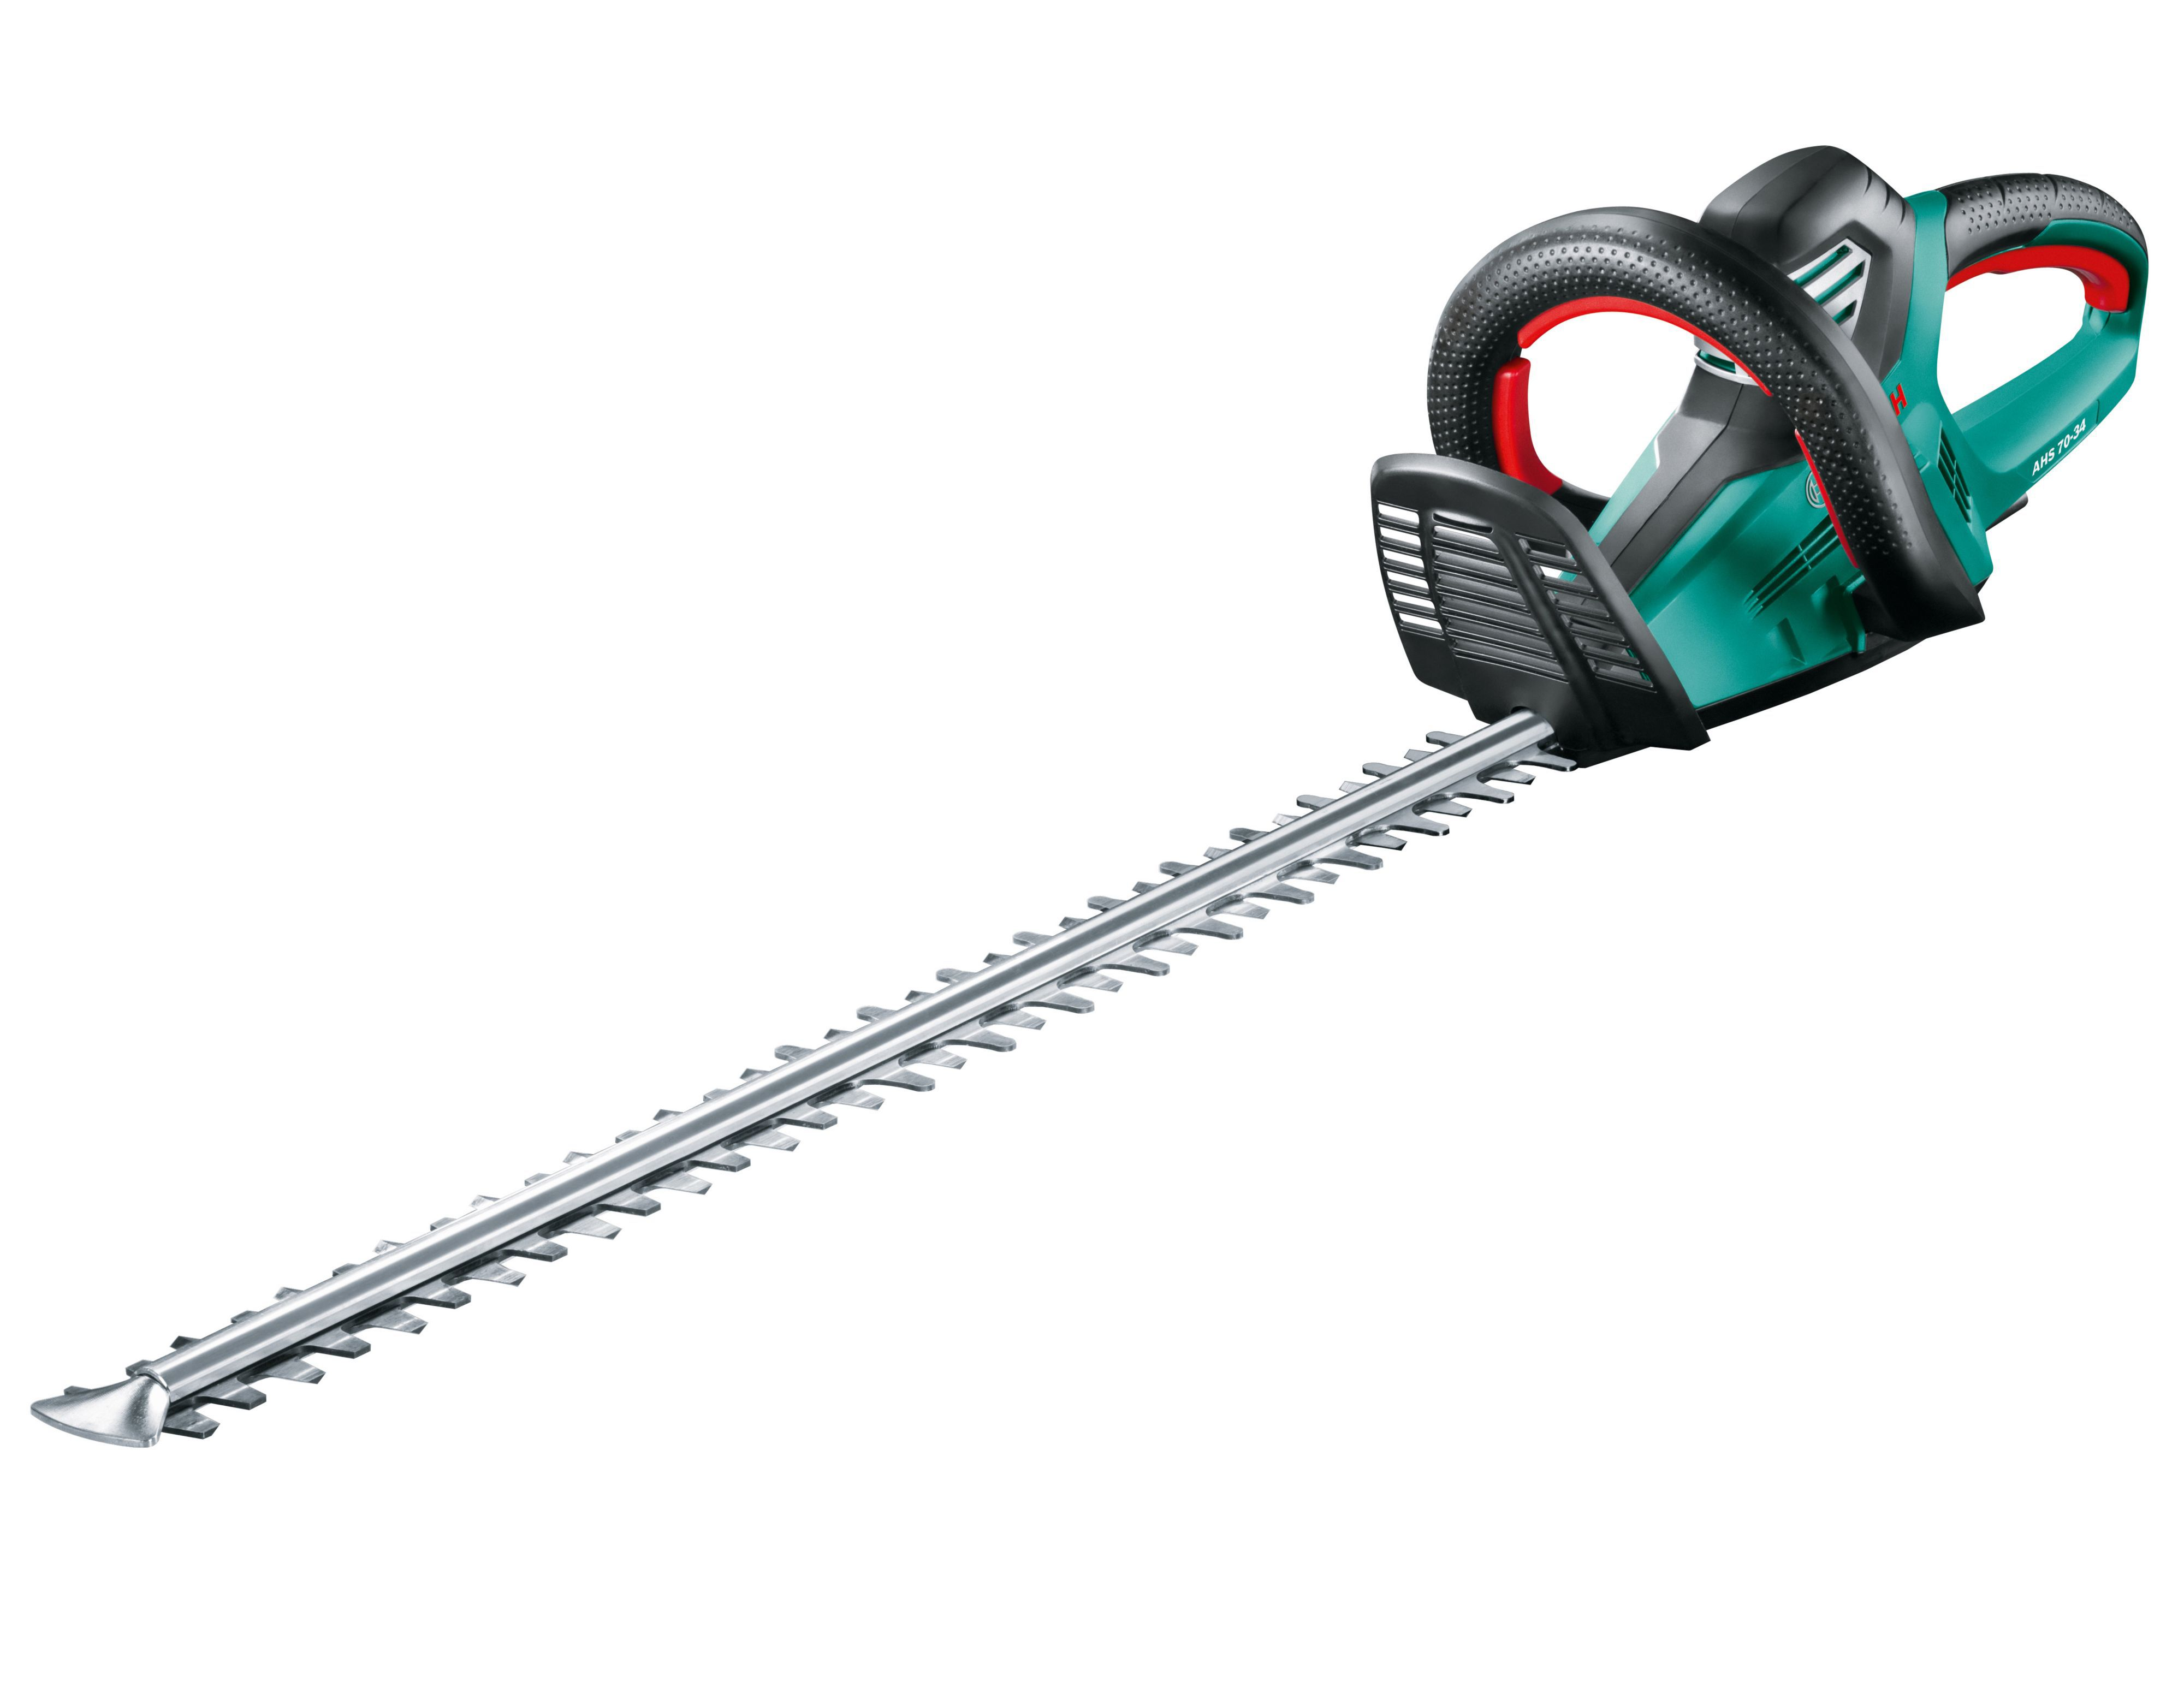 Bosch Ahs 70-34 Electric Corded Hedge Trimmer